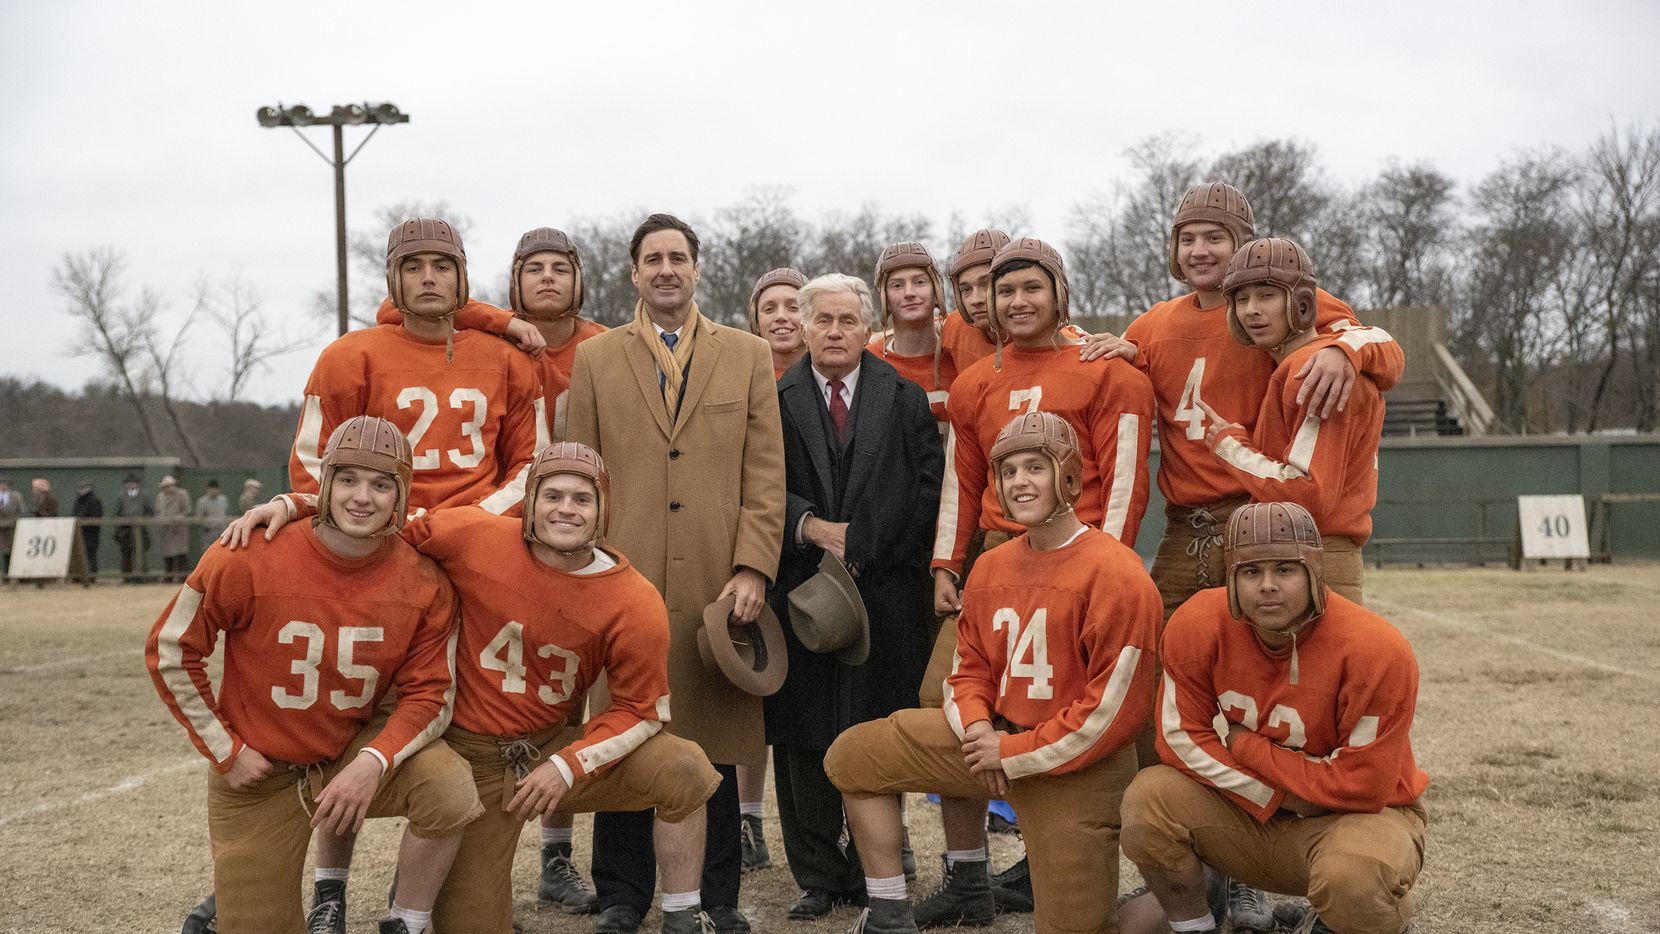 "A photo from the new movie ""12 Mighty Orphans."" Left to Right: (Back): Preston Porter, Woodrow Luttrell, Sampley Barinaga, Jacob Lofland (Middle): Levi Dylan, Luke Wilson, Martin Sheen, Manuel Tapia, Austin Shook, Michael Gohlke (Front): Slade Monroe, Jake Austin Walker, Bailey Roberts, Tyler Silva Photo by Laura Wilson."